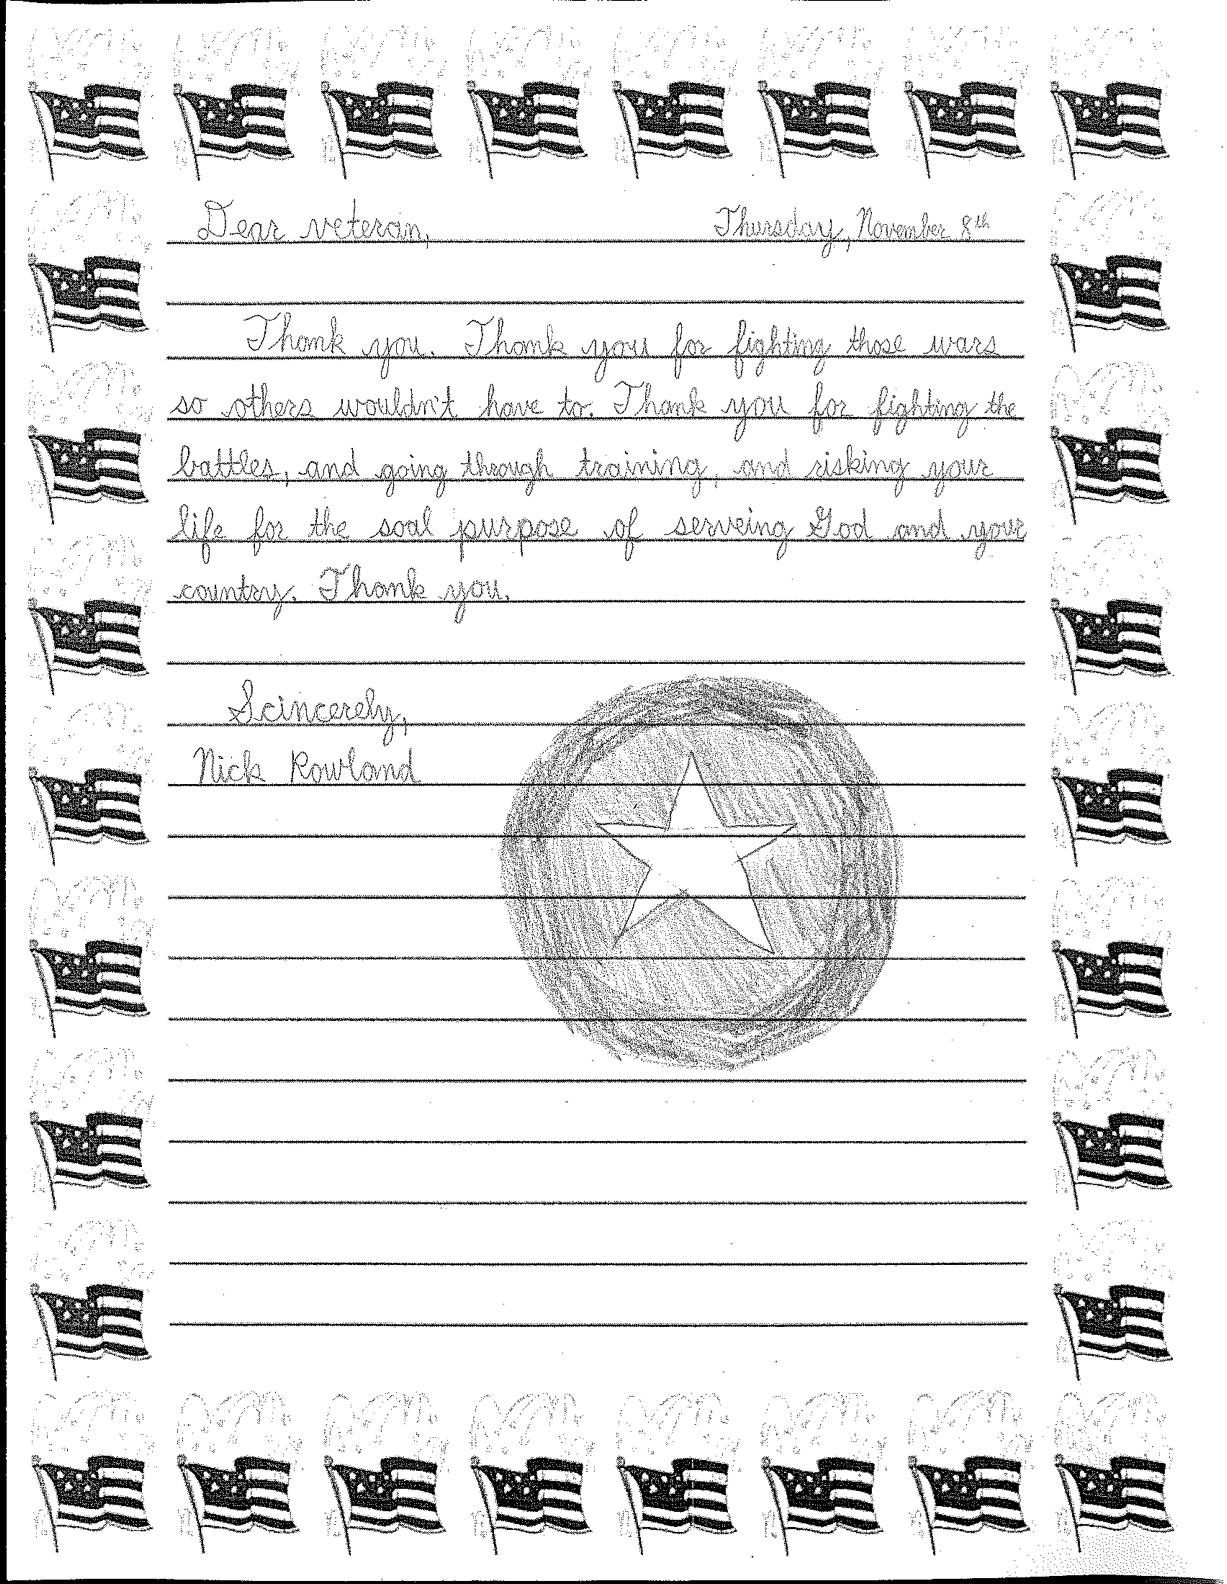 Veterans day letter template examples letter template for Veterans day thank you letter template